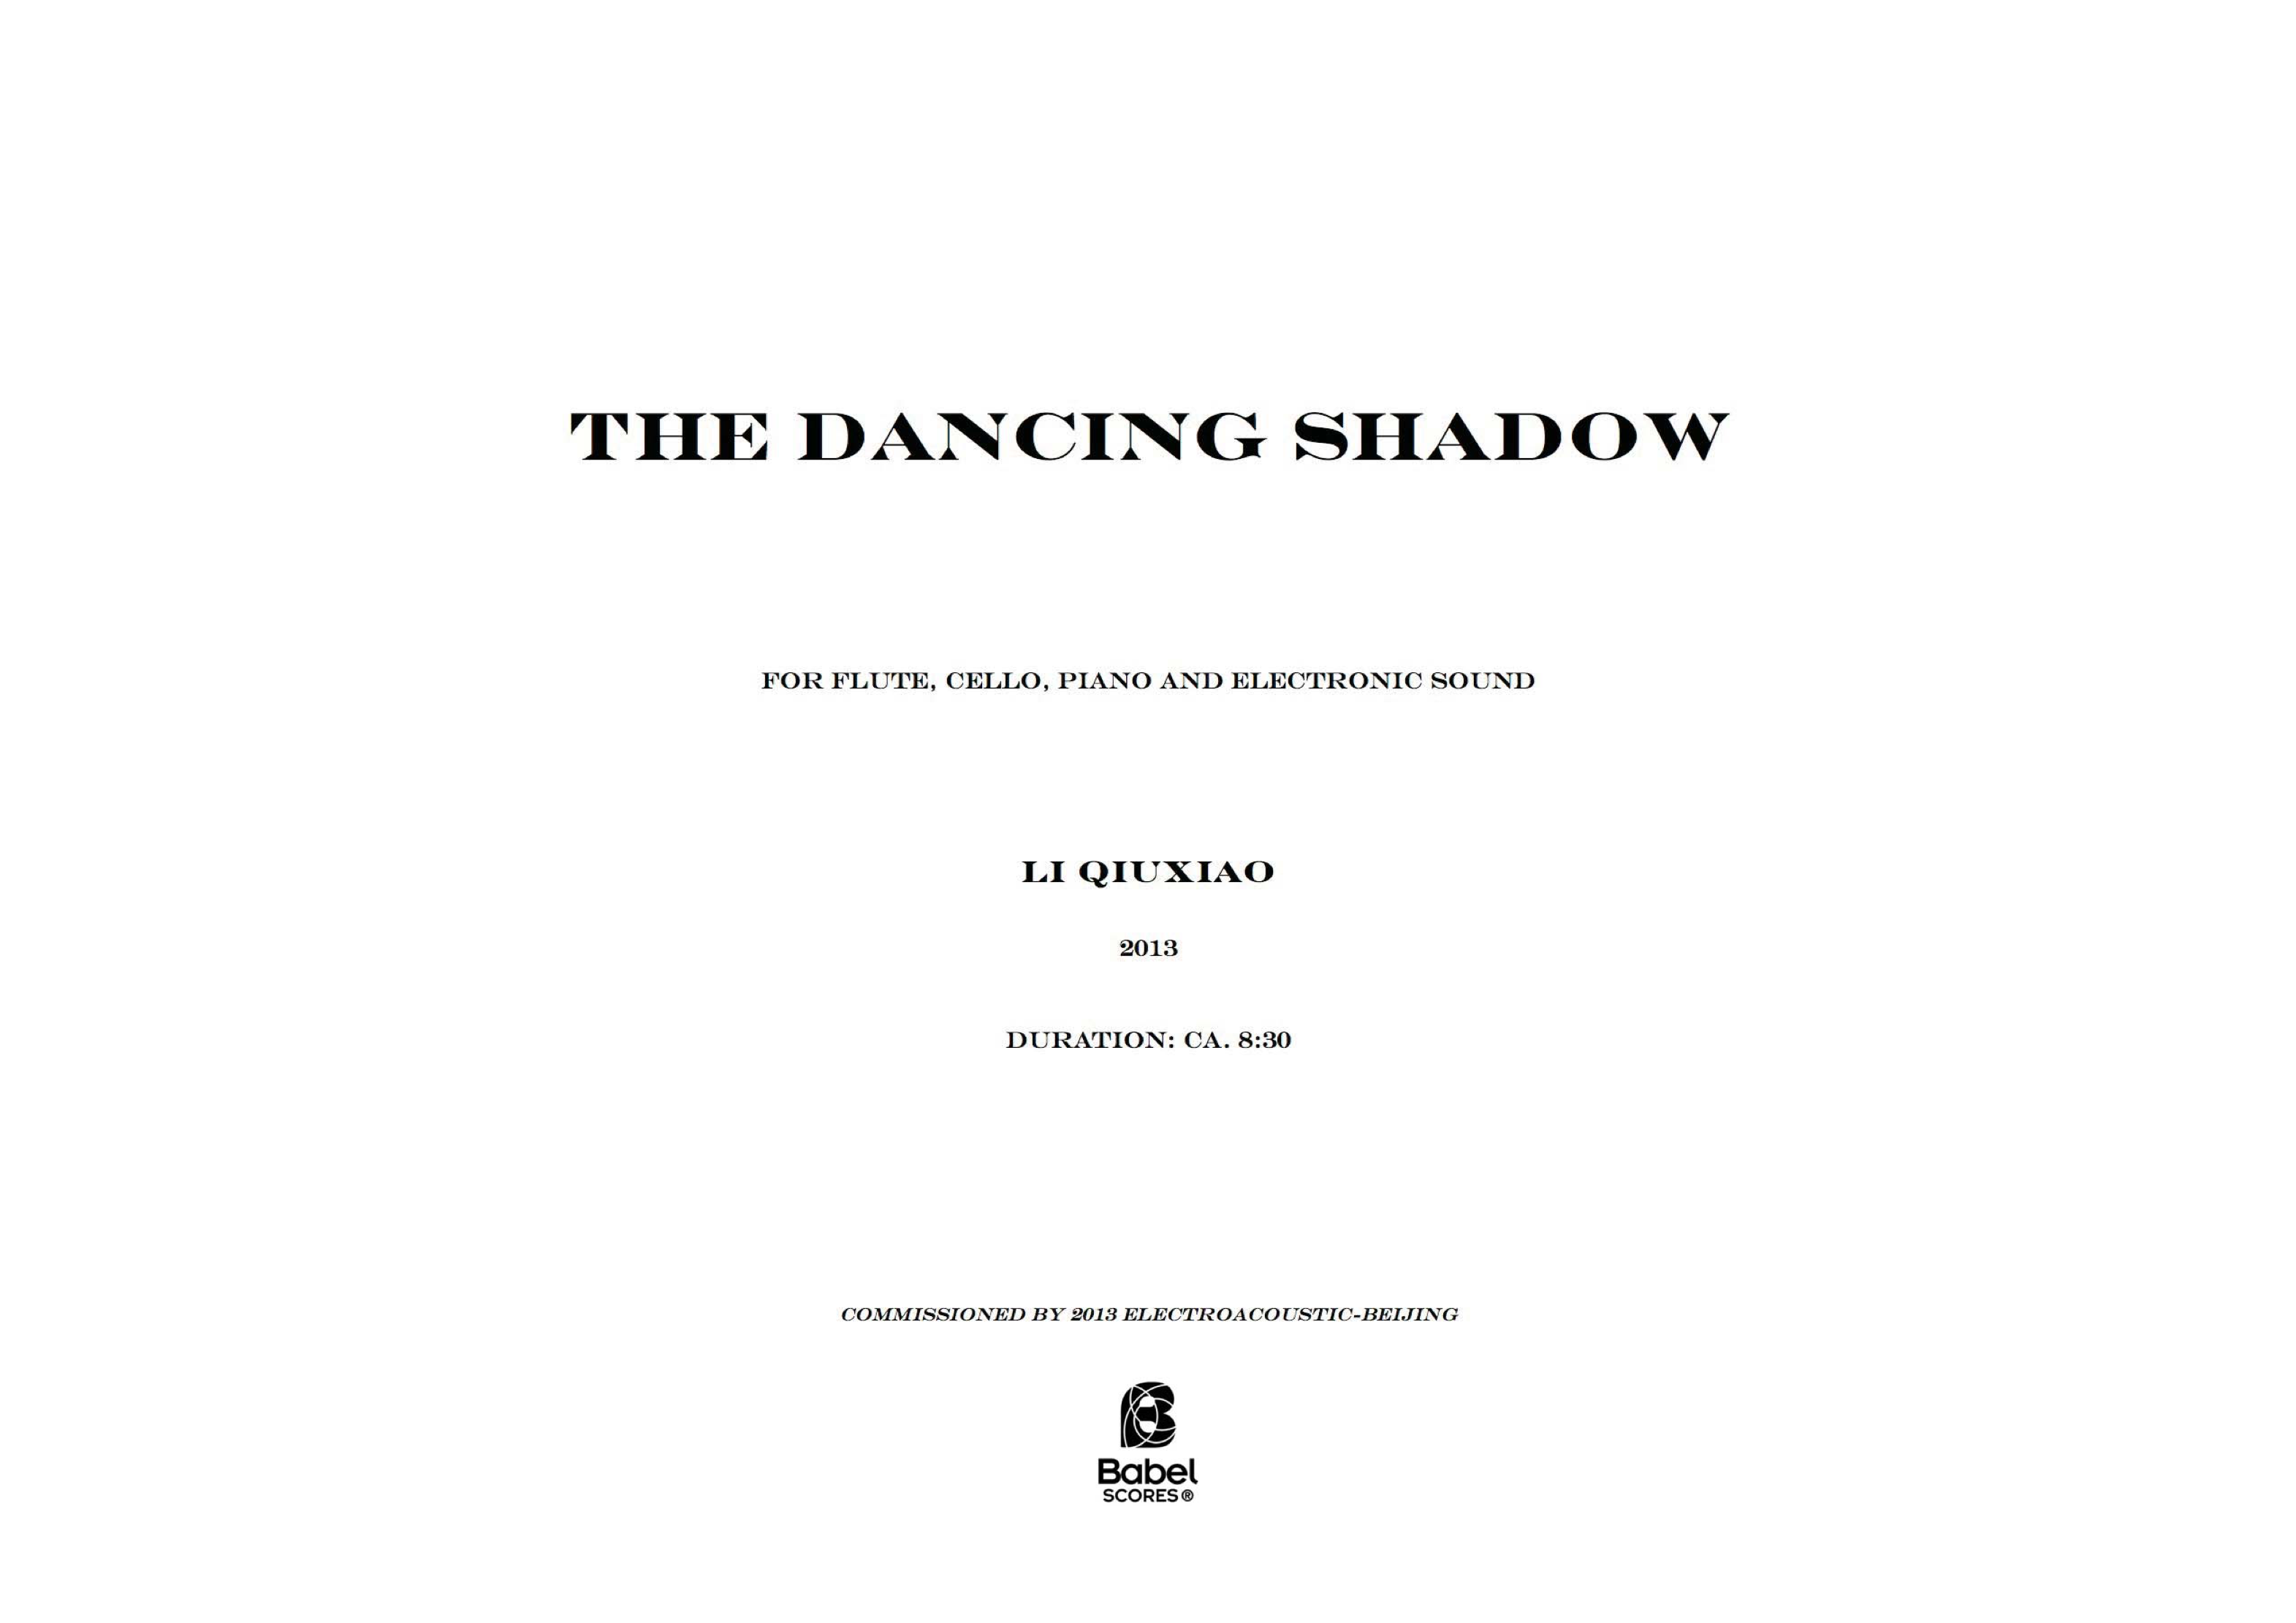 The dancing shadow A3 z